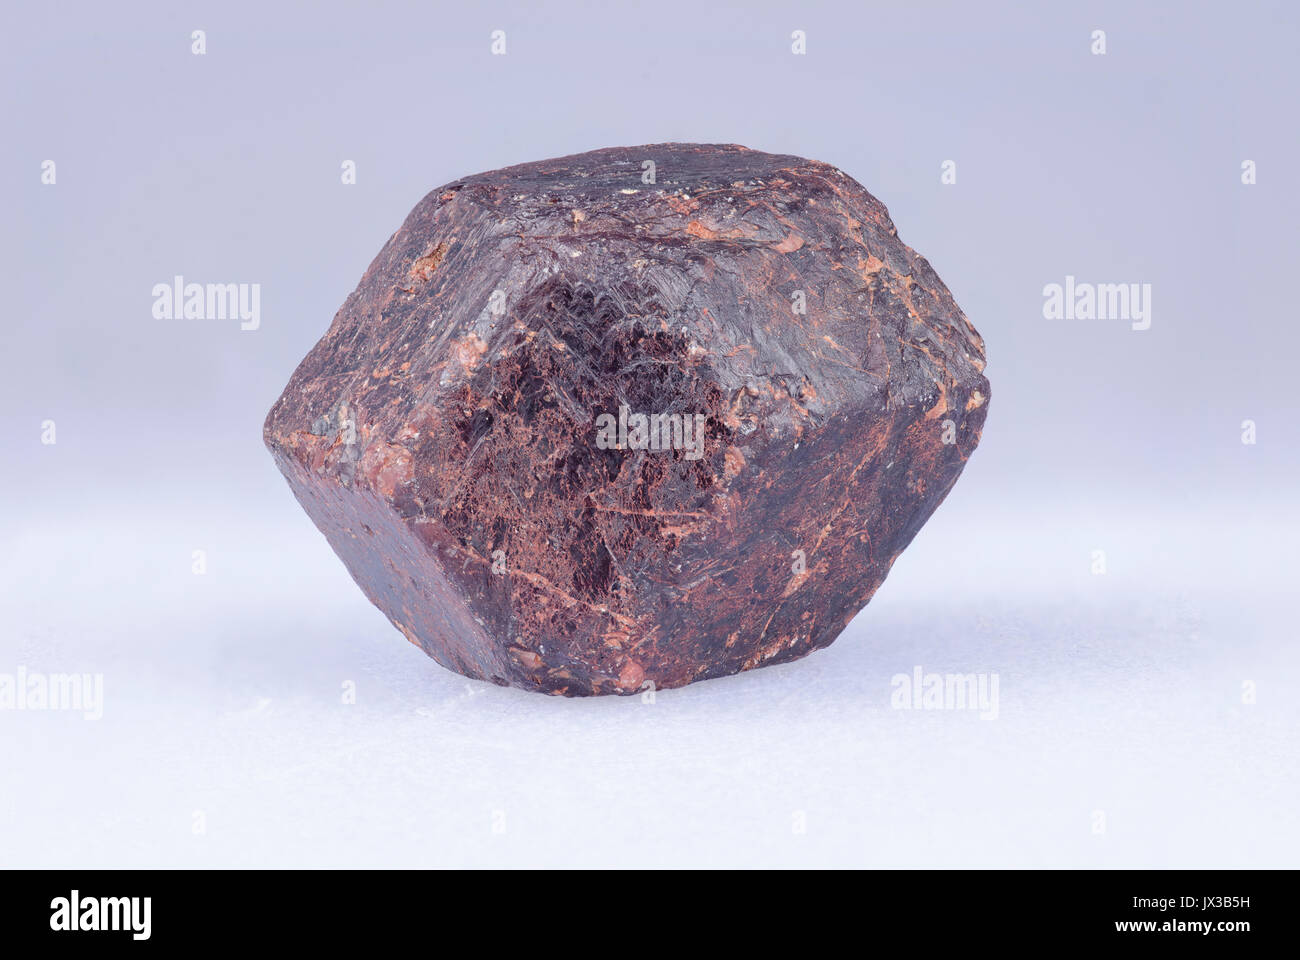 Garnet crystal from Mt Riddick, Northern territory, Australia Stock Photo